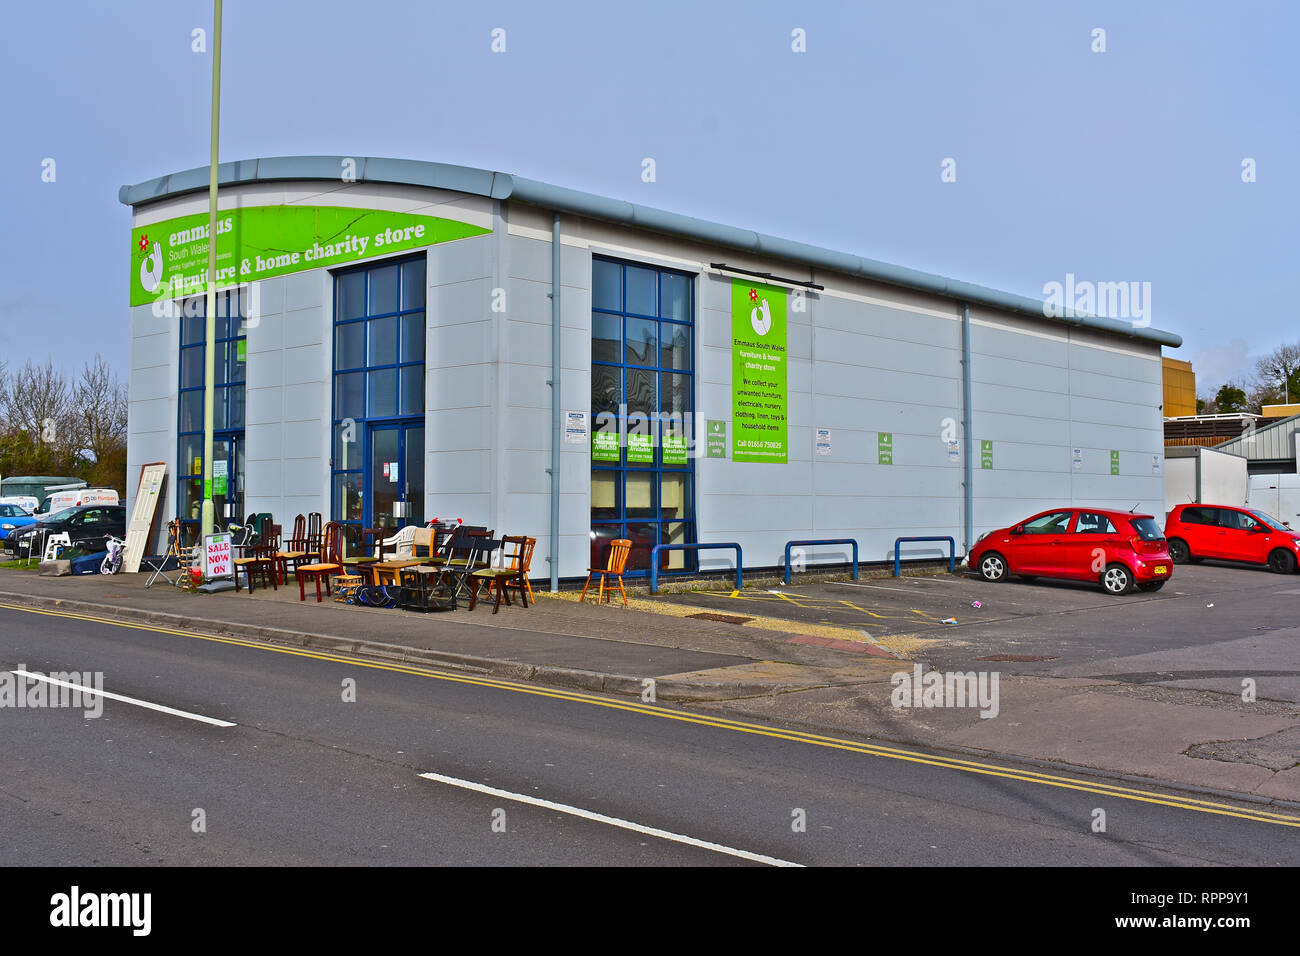 Building in Tremains Road Bridgend occupied as a shop for secondhand goods,to raise money for the  Emmaus Charity to end homelessness in UK. Stock Photo